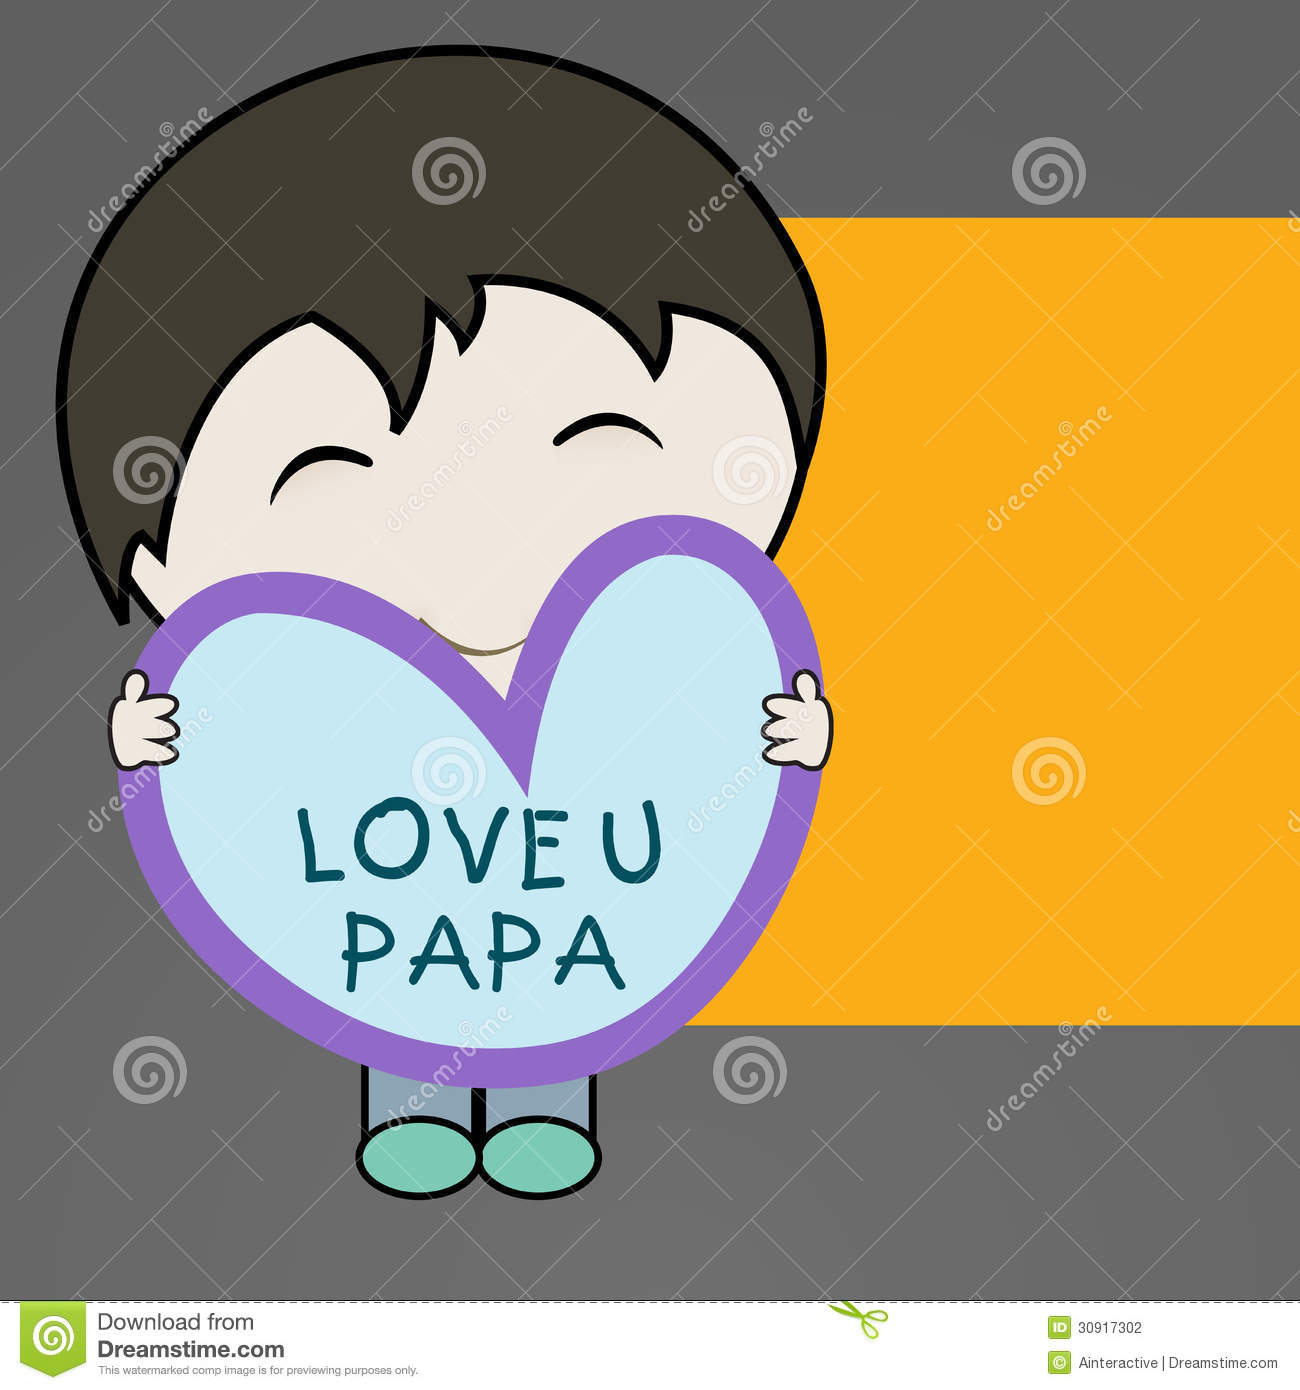 i love you papa wallpapers - photo #20